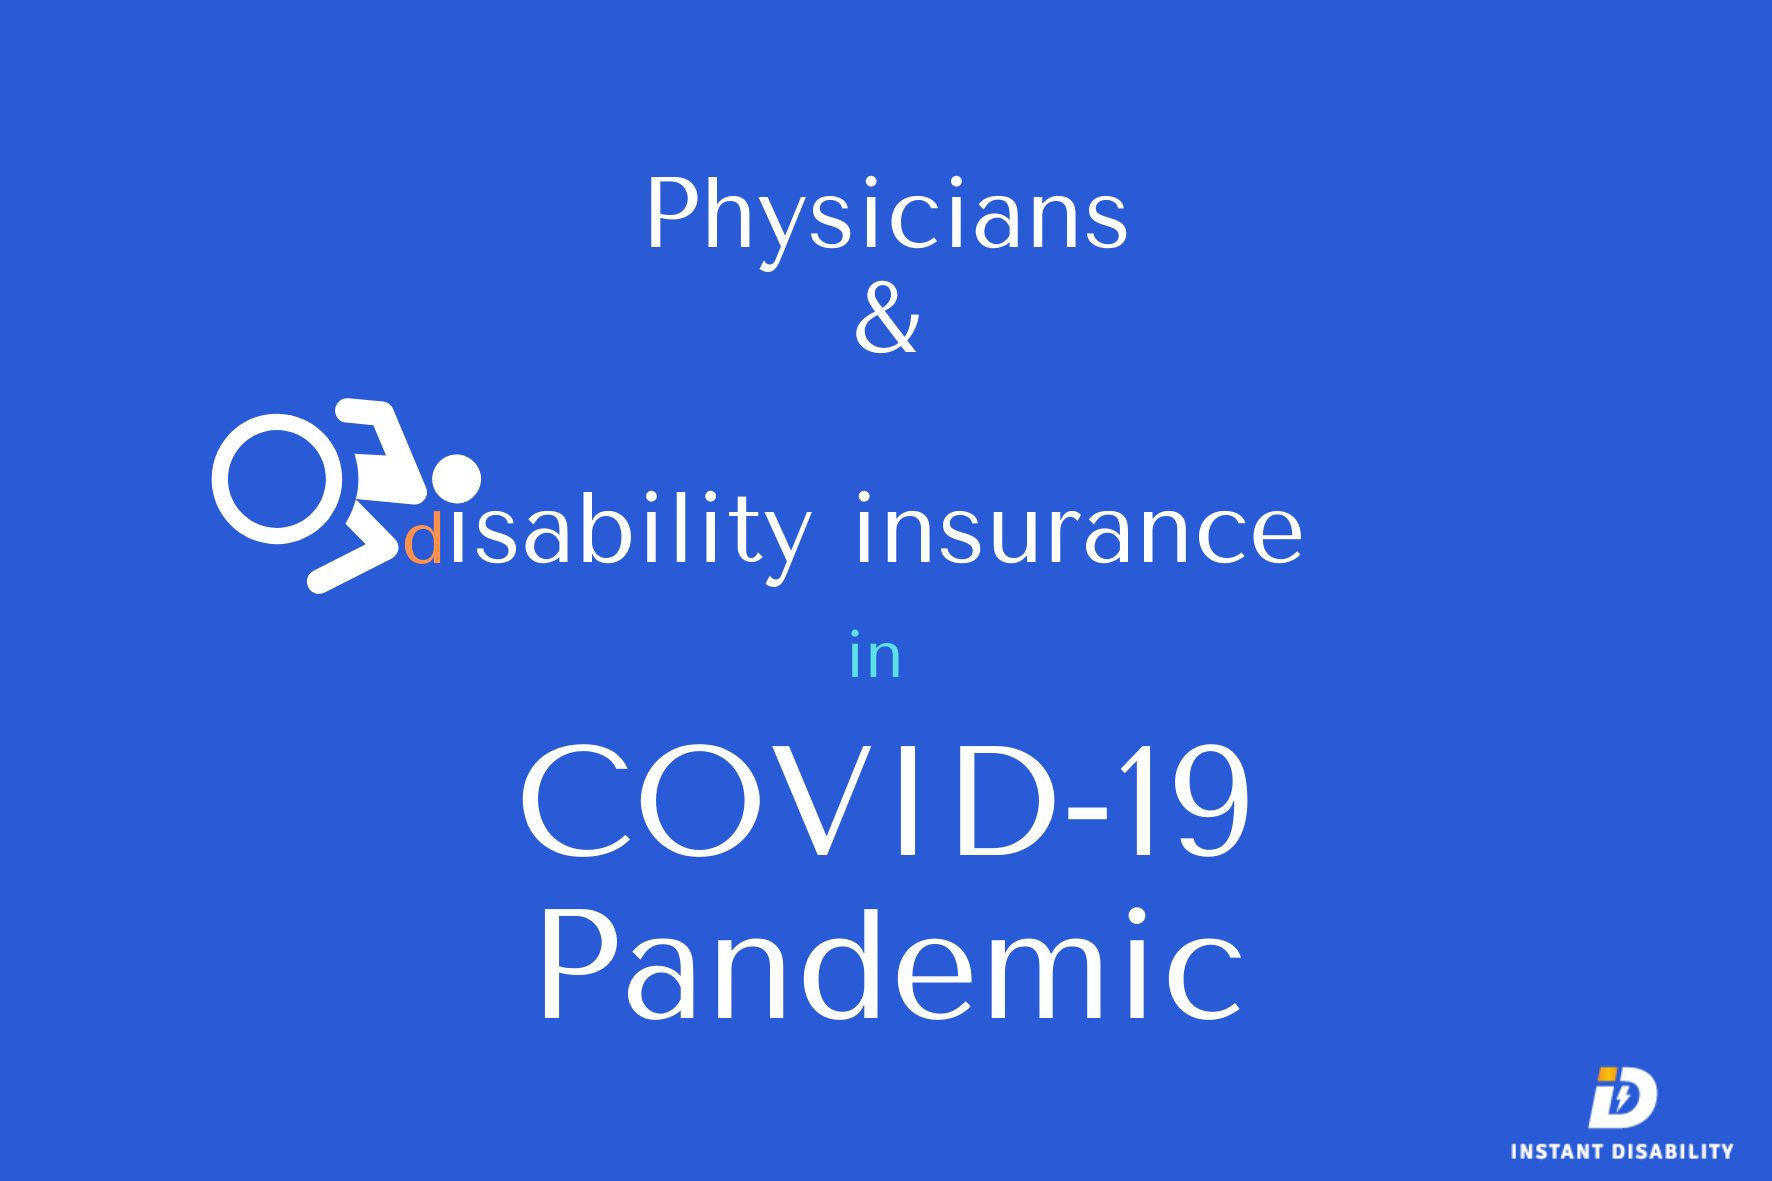 Physician Disability Insurance